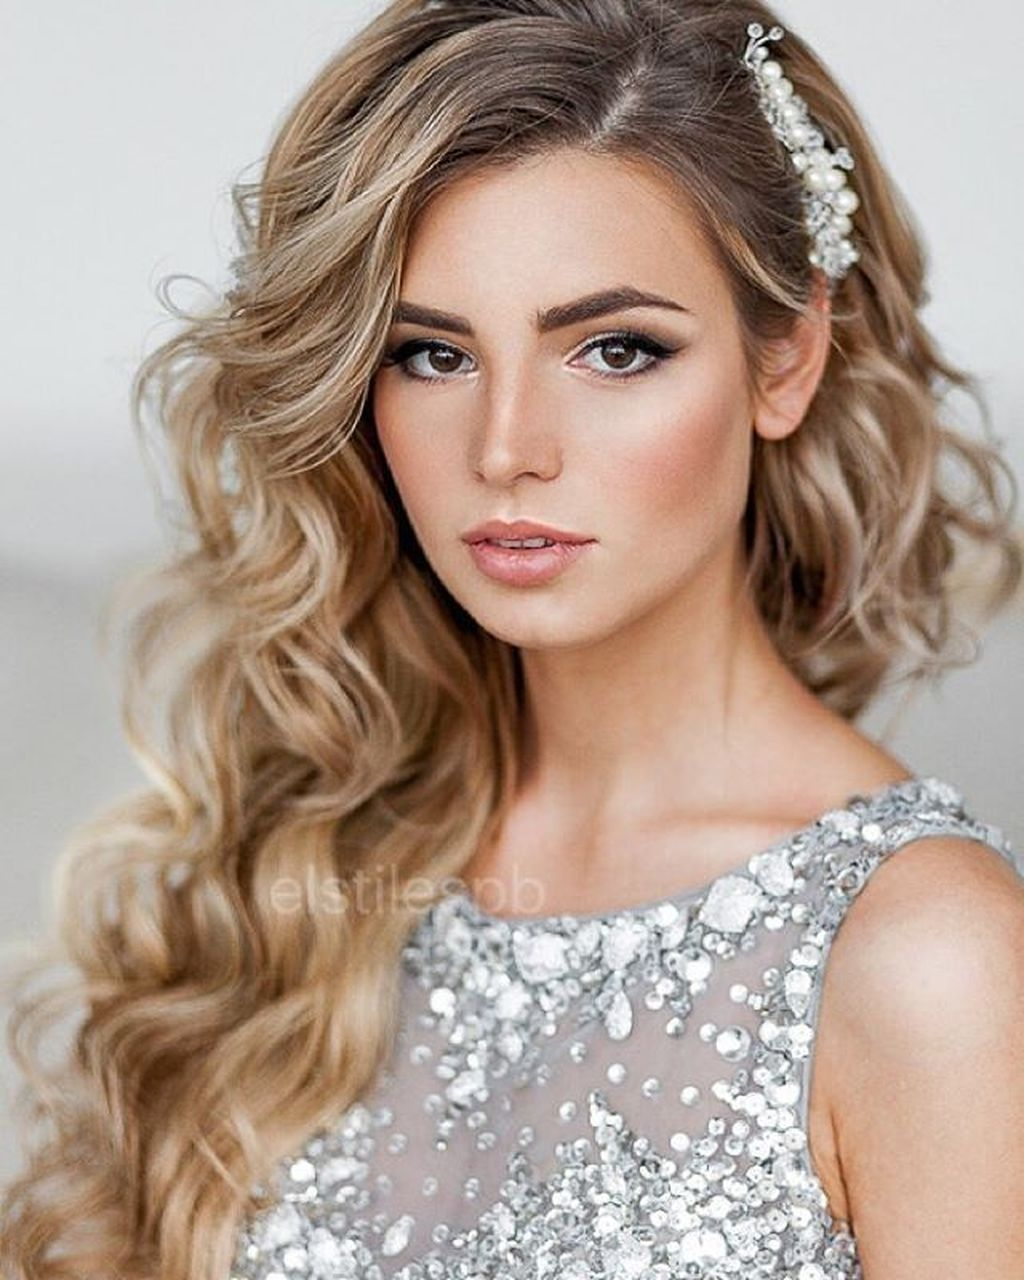 37 Elegant Natural Hairstyles Wedding Ideas - TILEPENDANT